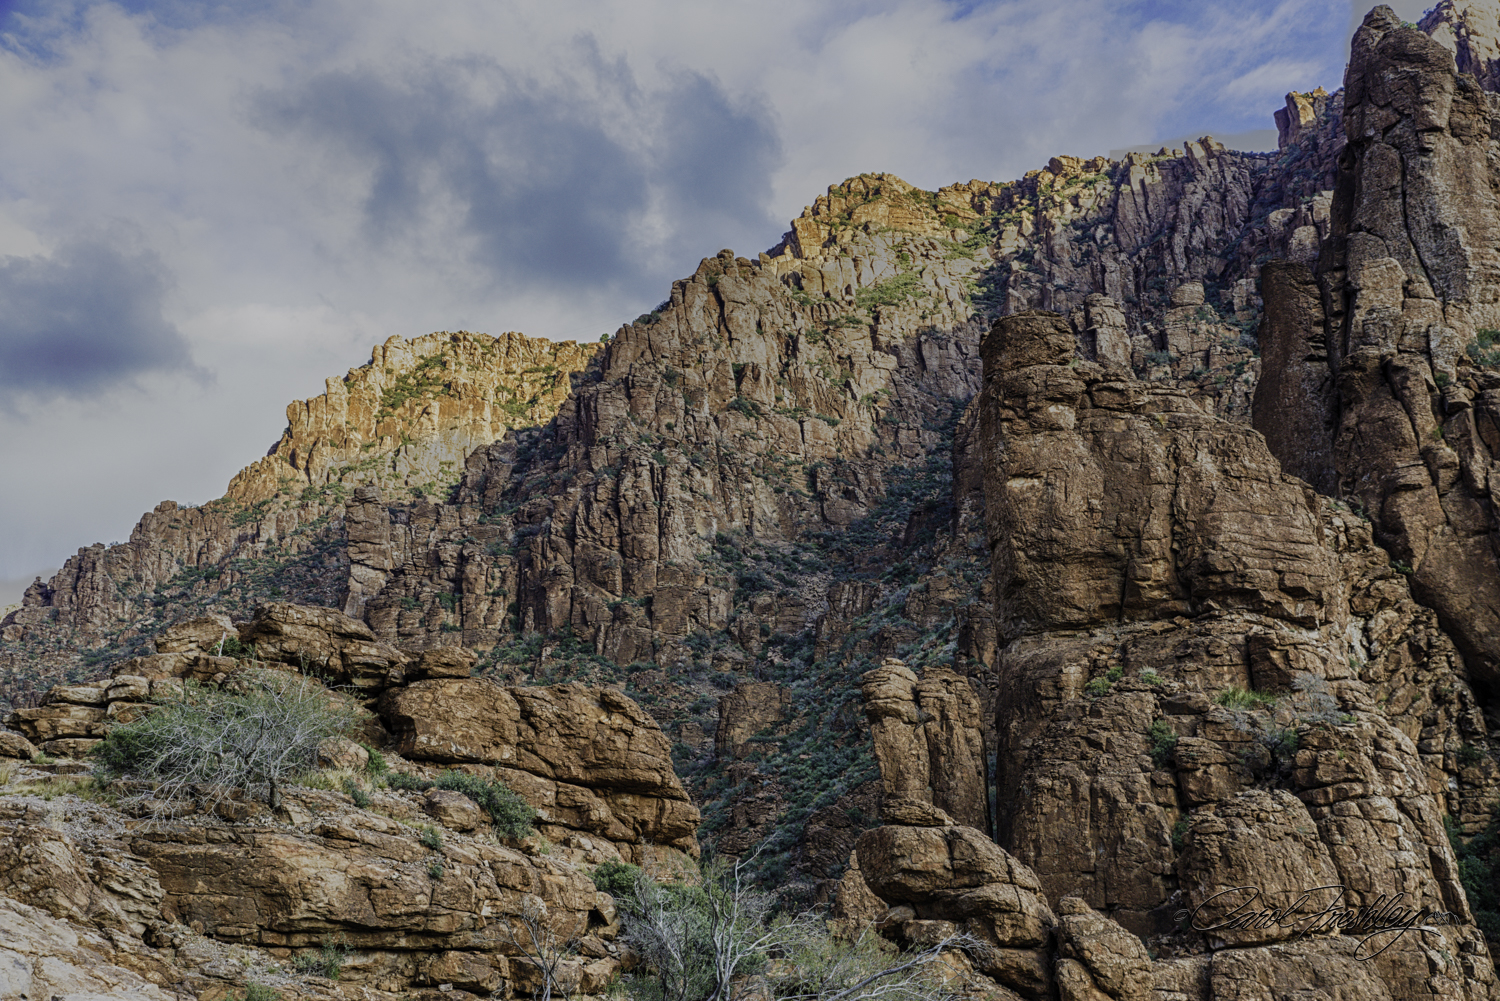 These are the majestic rocks that are on both sides of the canyon as you approach the tunnel just before going into Superior.